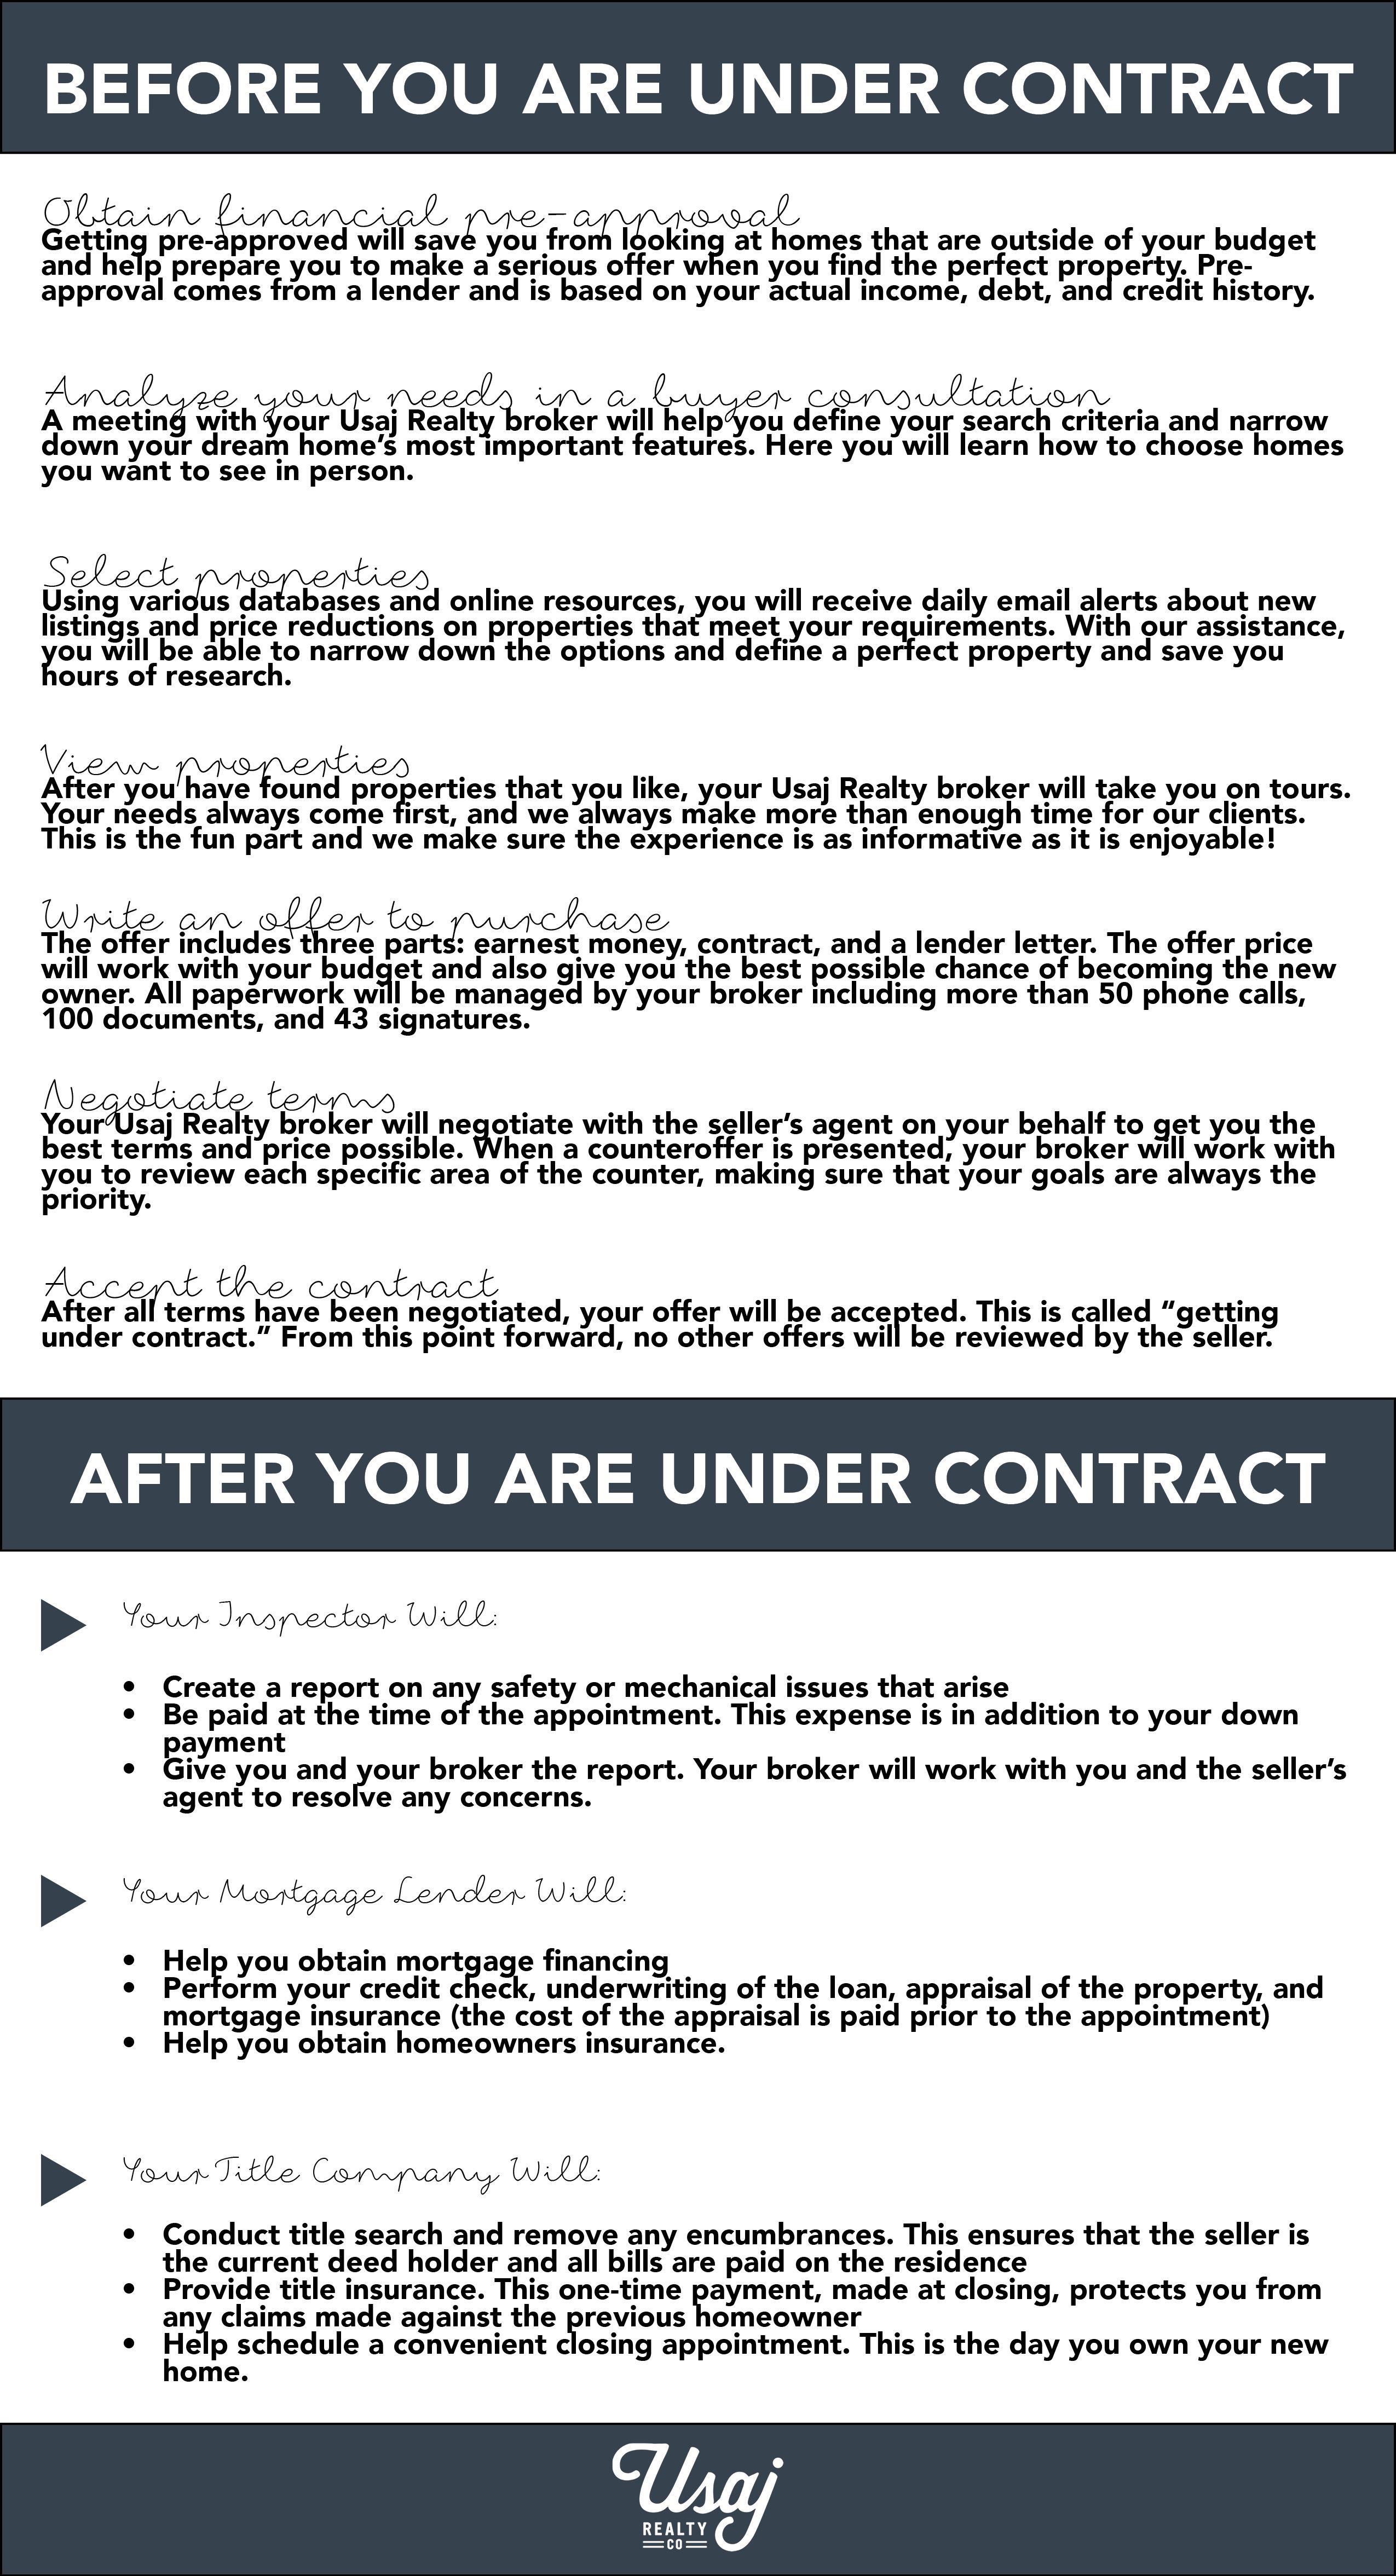 Home Buying Process by Usaj Realty #Denver #RealEstate ...